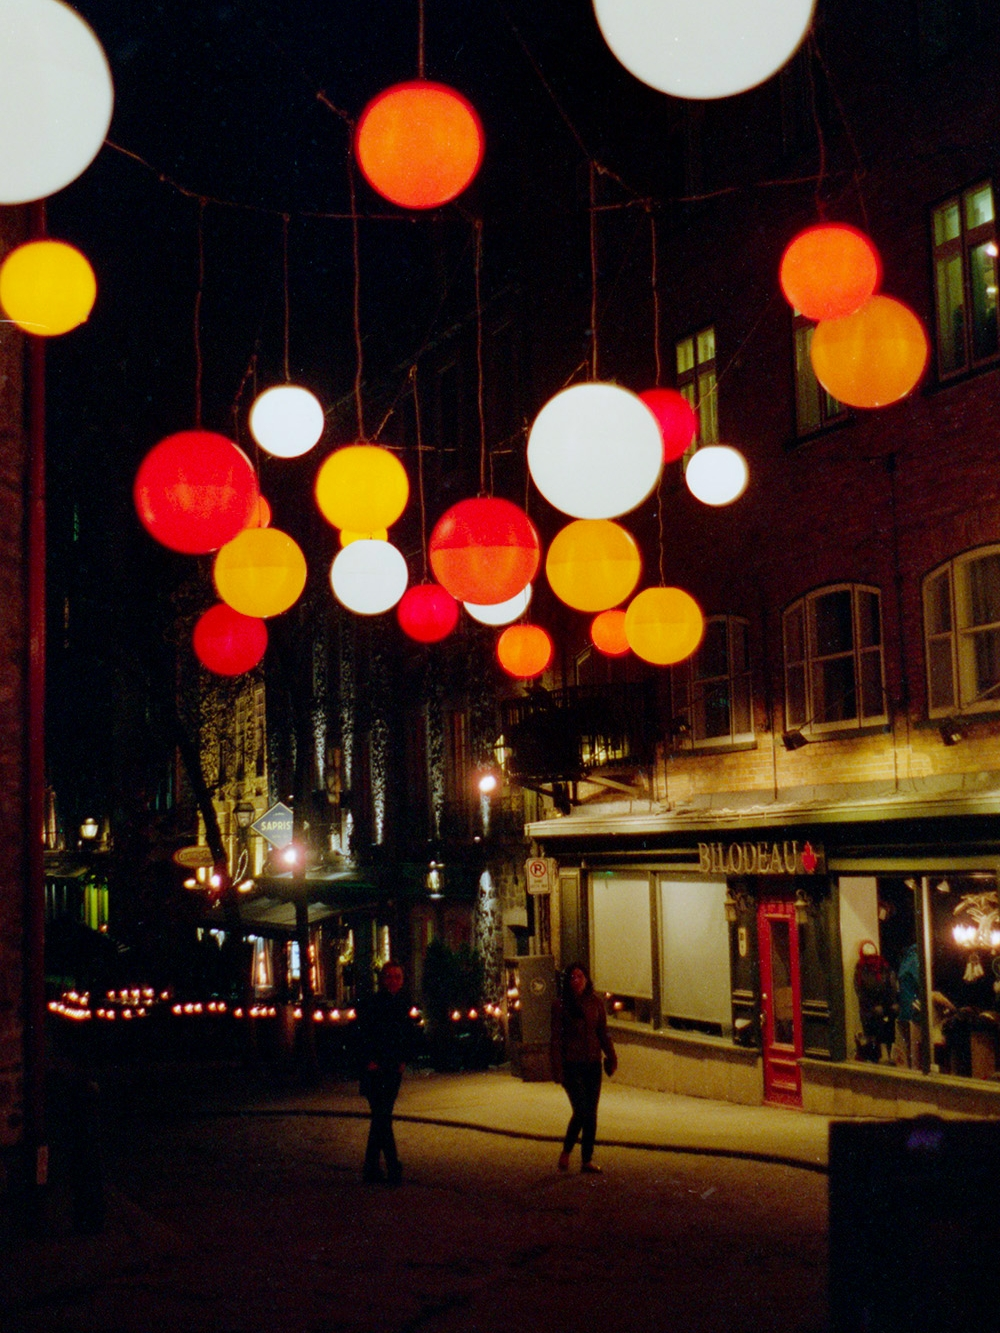 Streets of Old Quebec City lit by colourful orbs. May 2017.